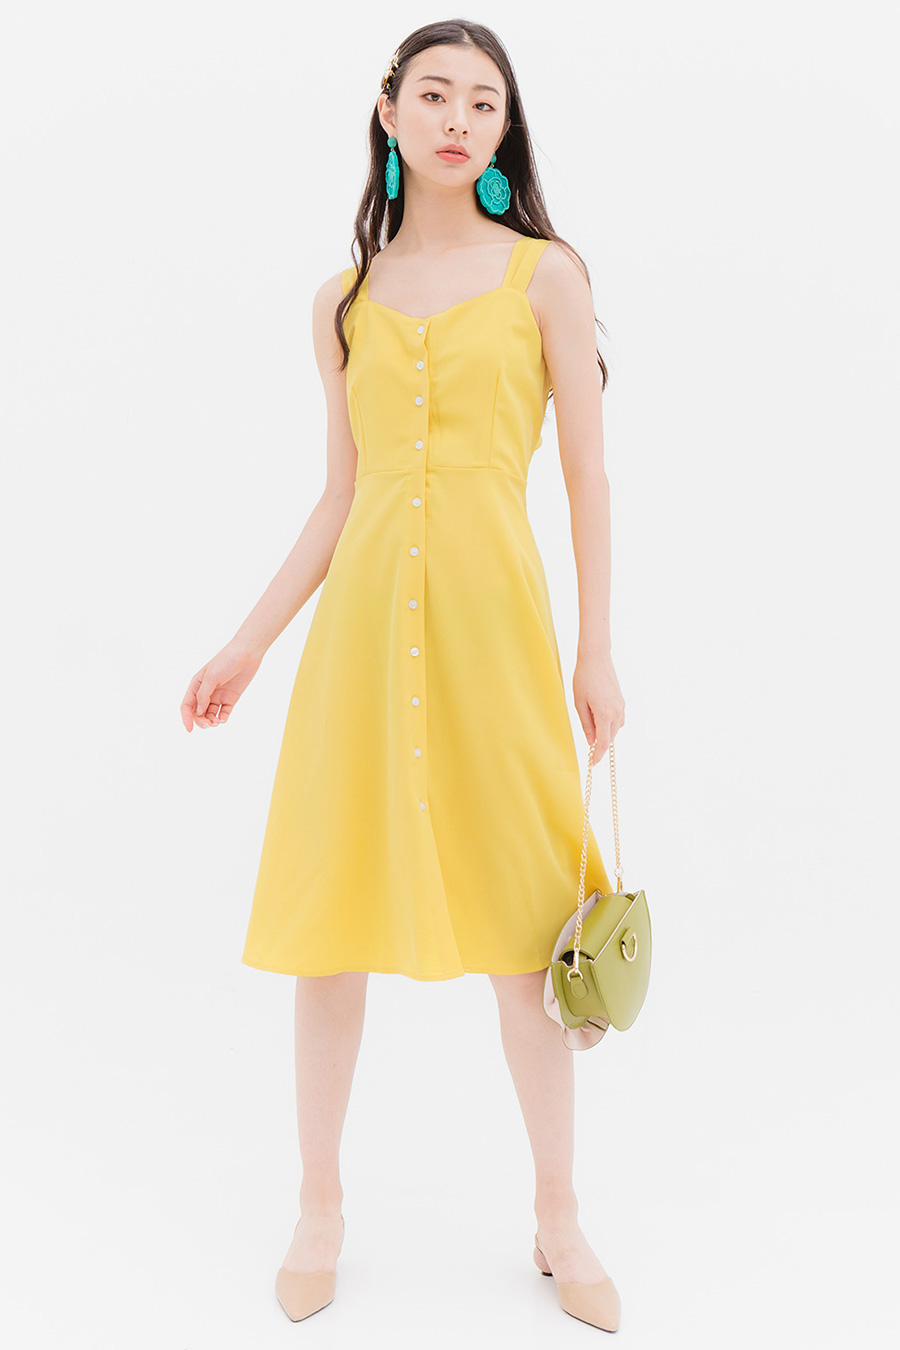 *BO* SHERPA DRESS - BUTTERCUP